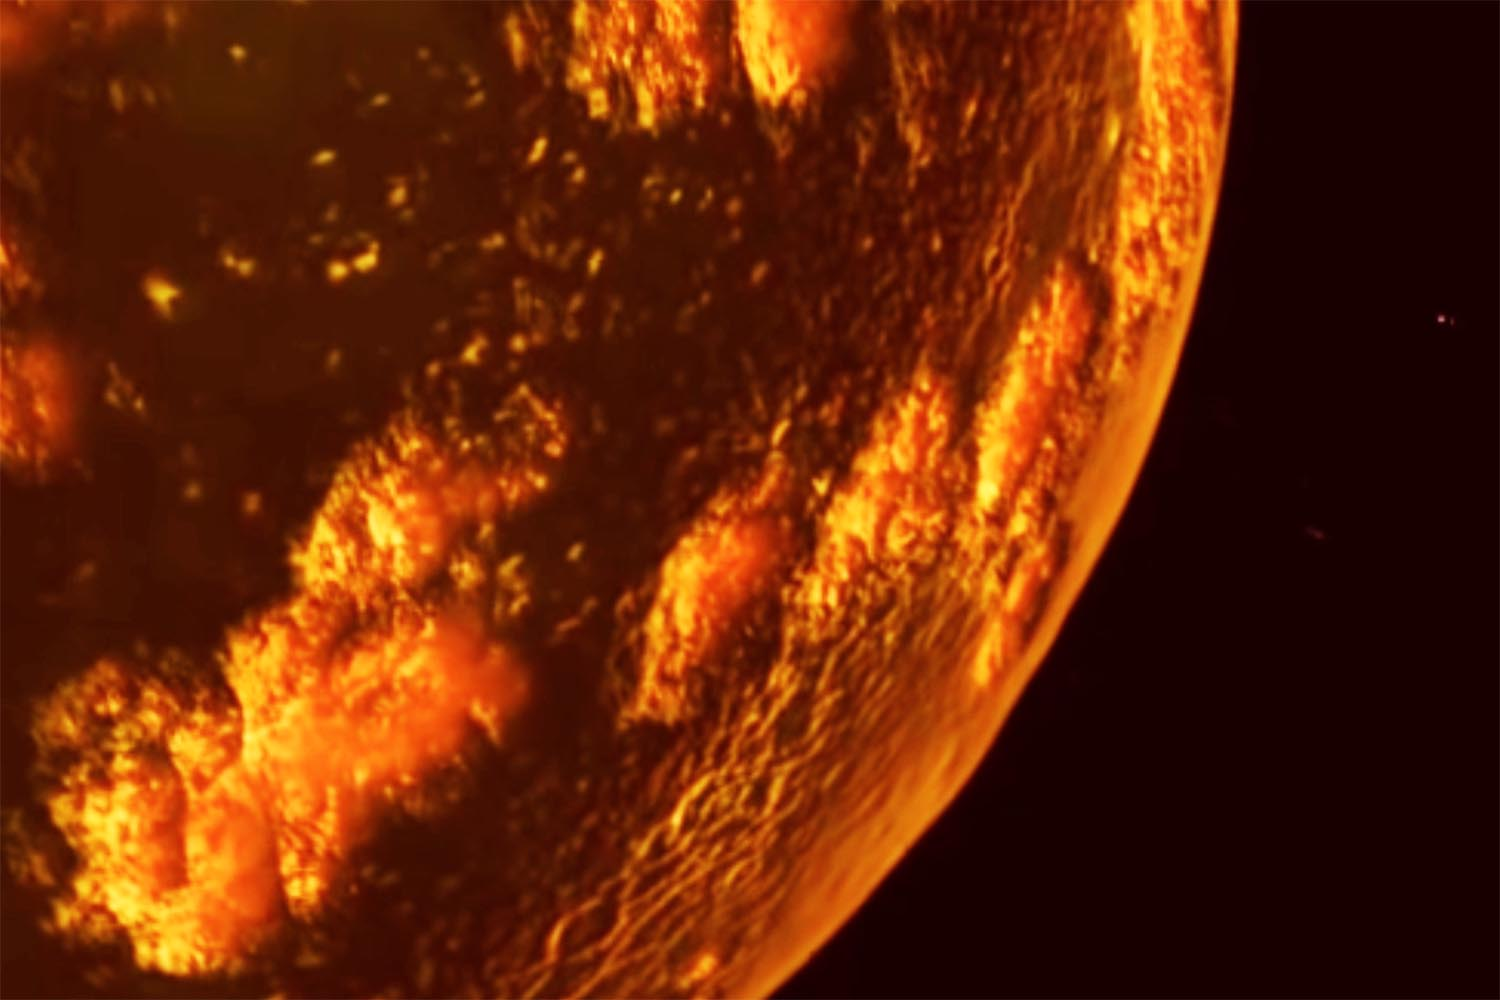 8. PLANET X FACTS: NASA'S NIBIRU MEANS THE RETURN OF SATAN SAYS THE POPE Astrophysicist Meeting with Aliens from Proxima B; NASA knows... NASA Found Planet X Full of Aliens Close to Earth - Clapway Clapway